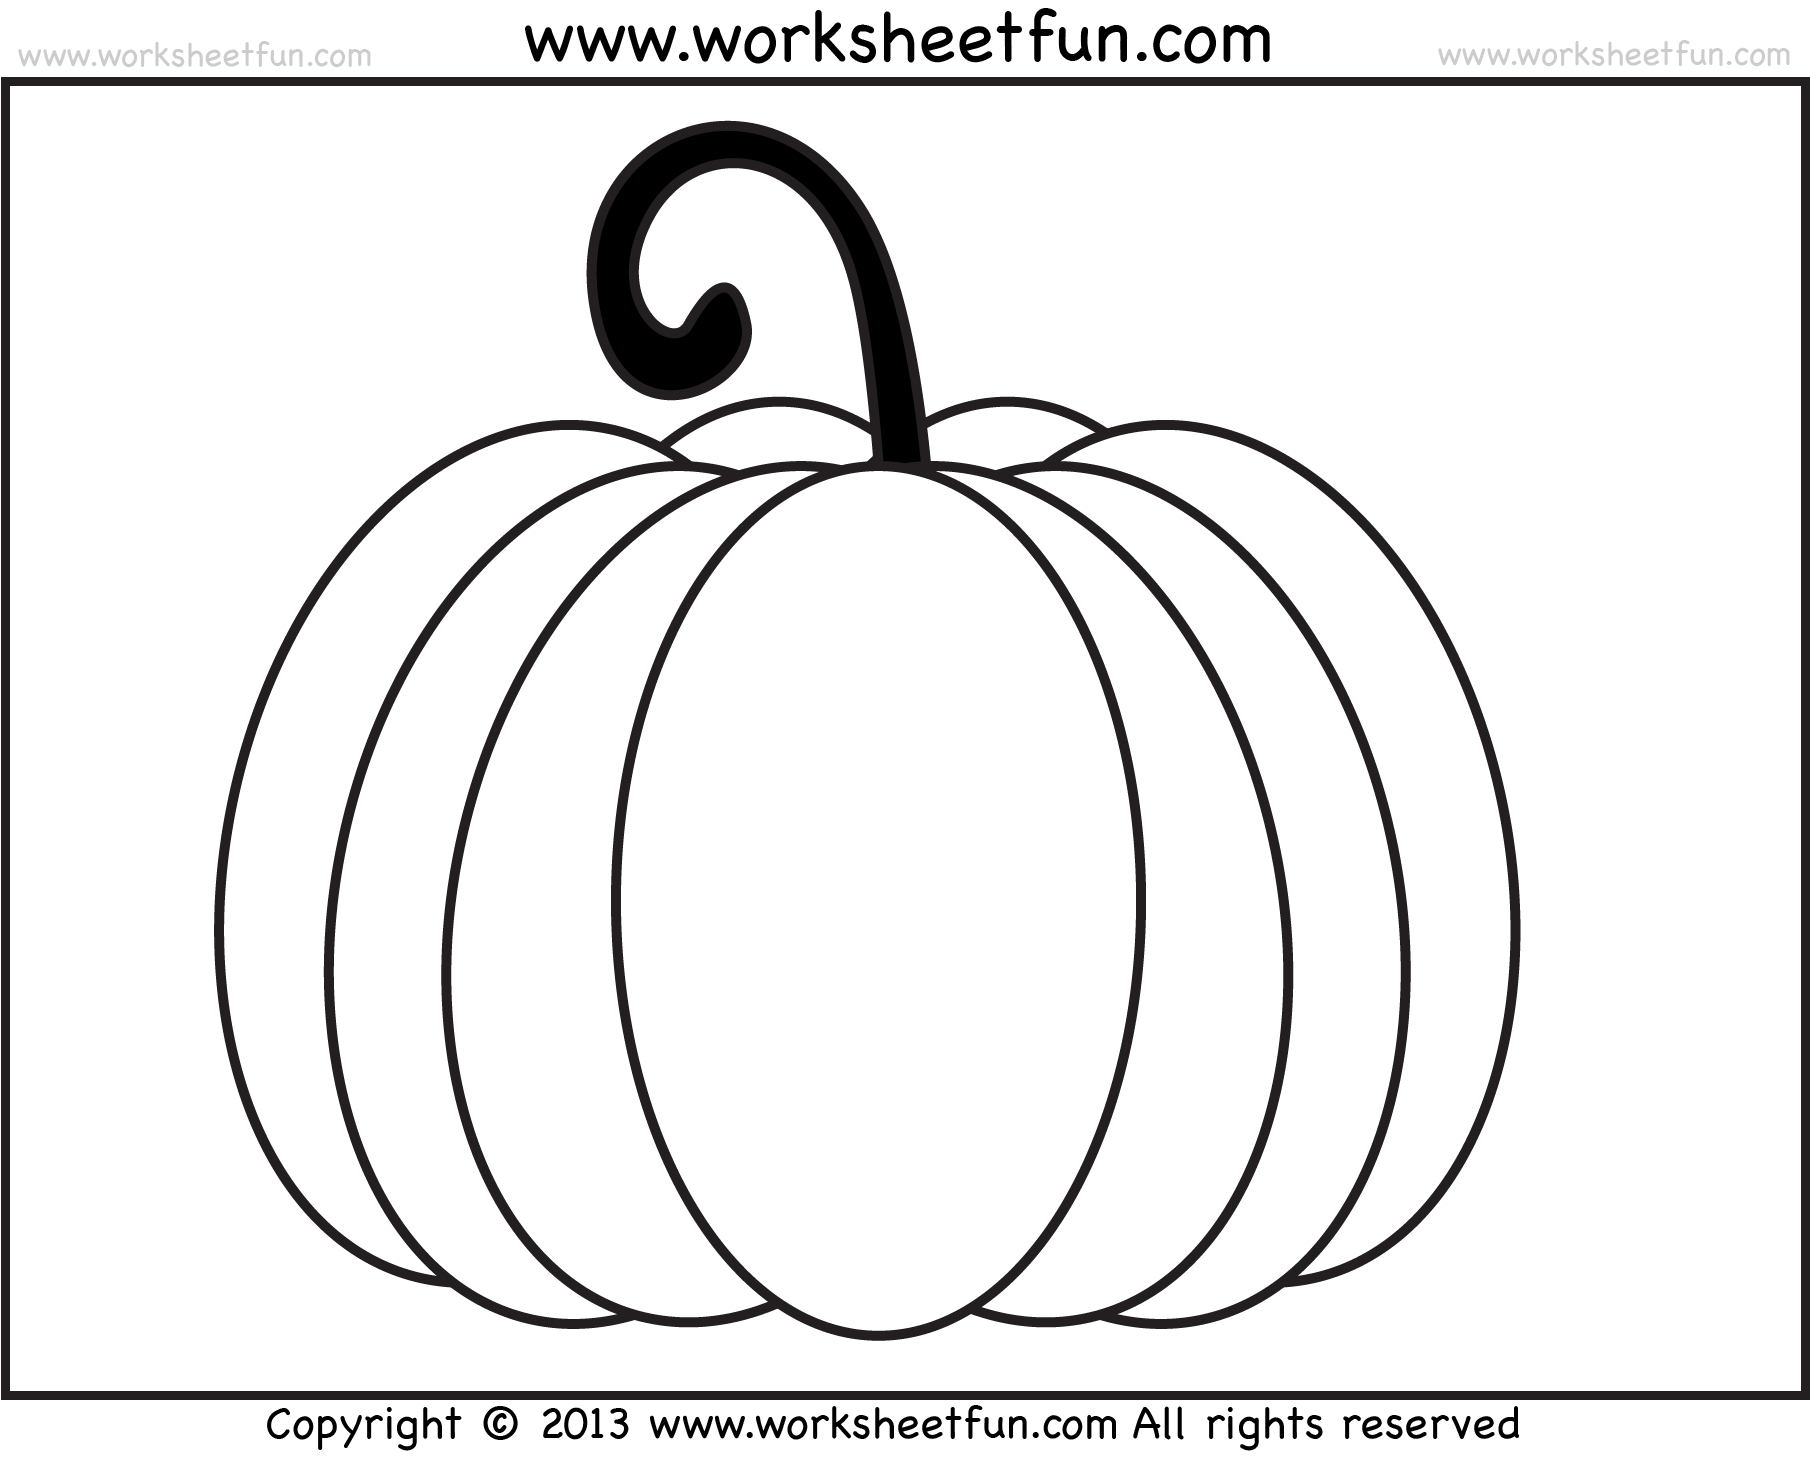 Worksheet For Preschool Halloween Pumpkin